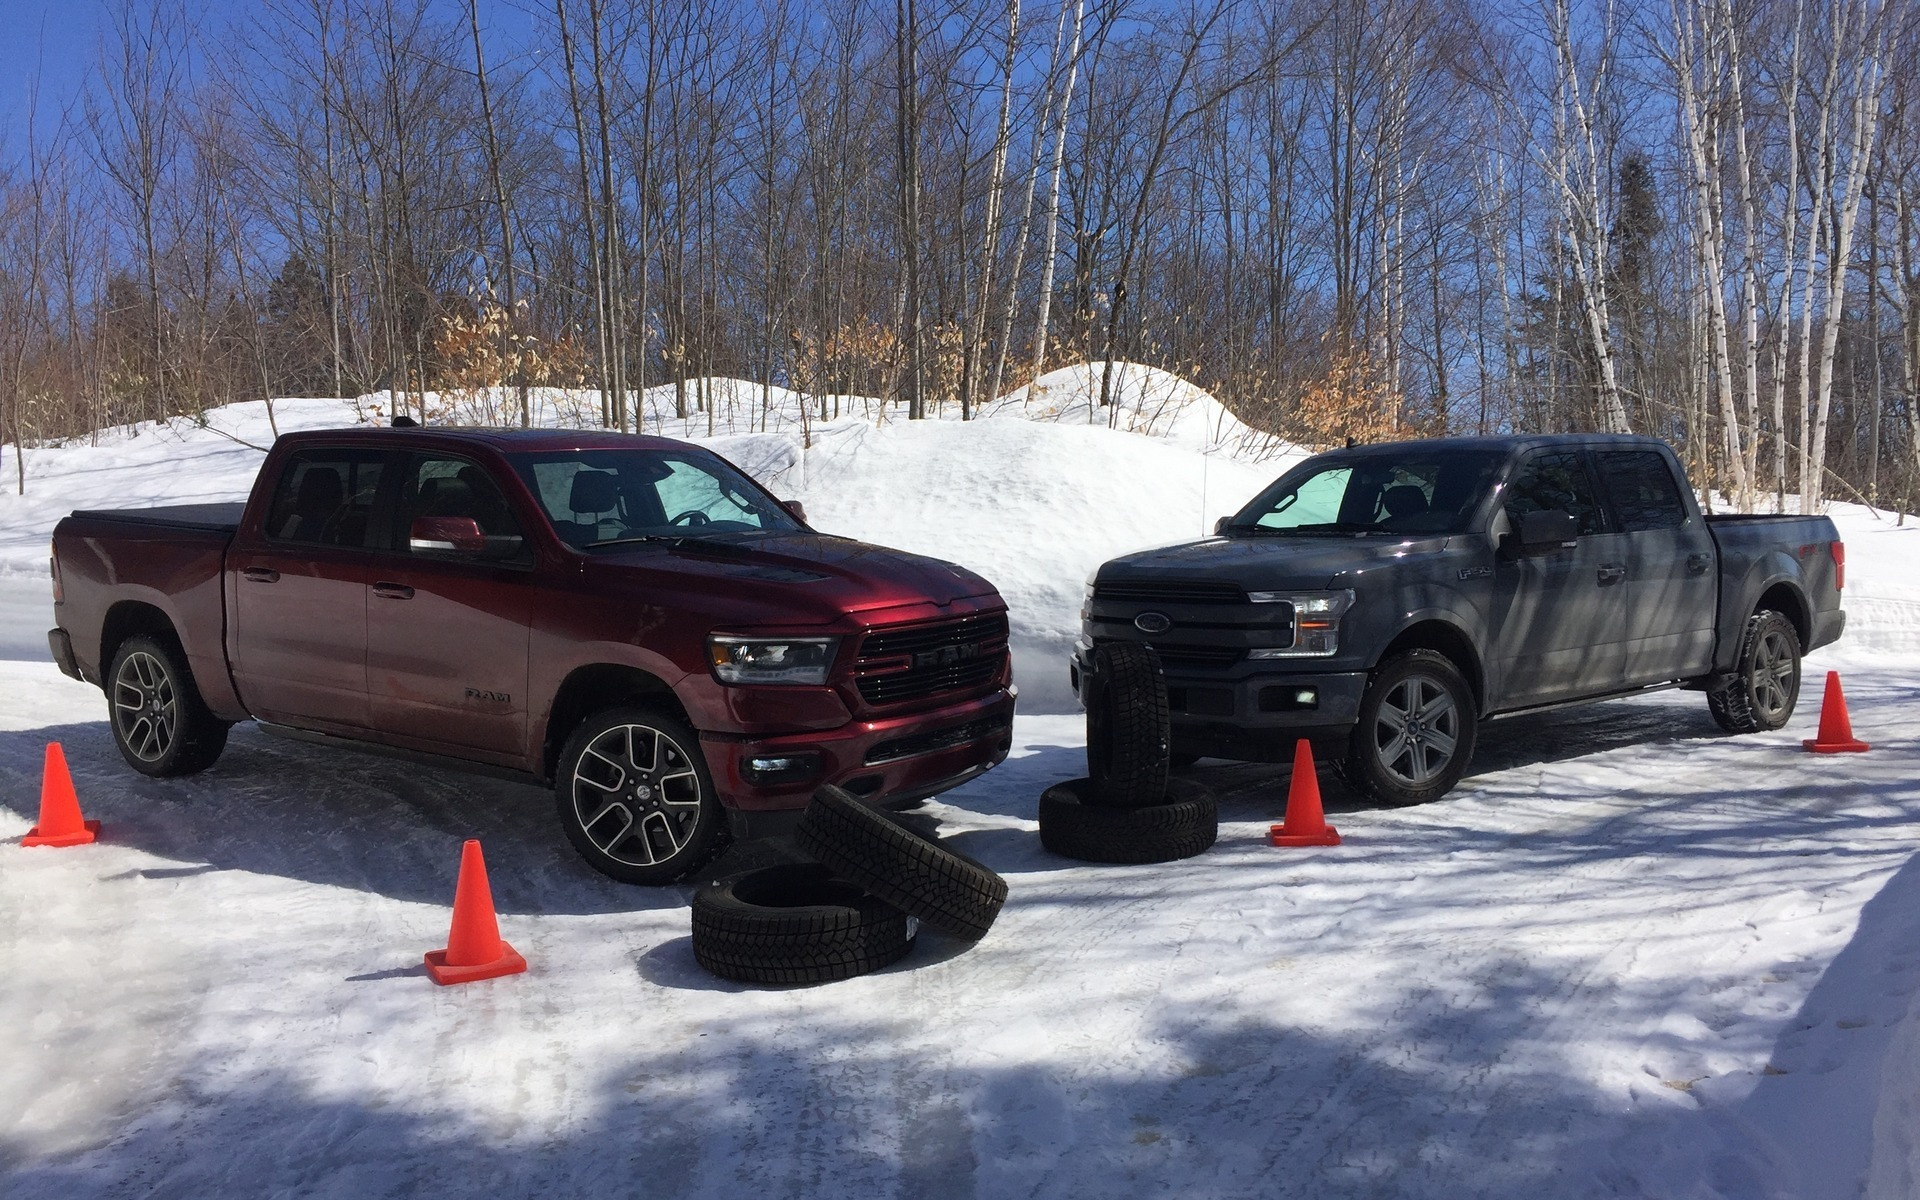 Best All Season Tires 2020.Top 10 Winter Tires For Pickups And Large Suvs In 2019 2020